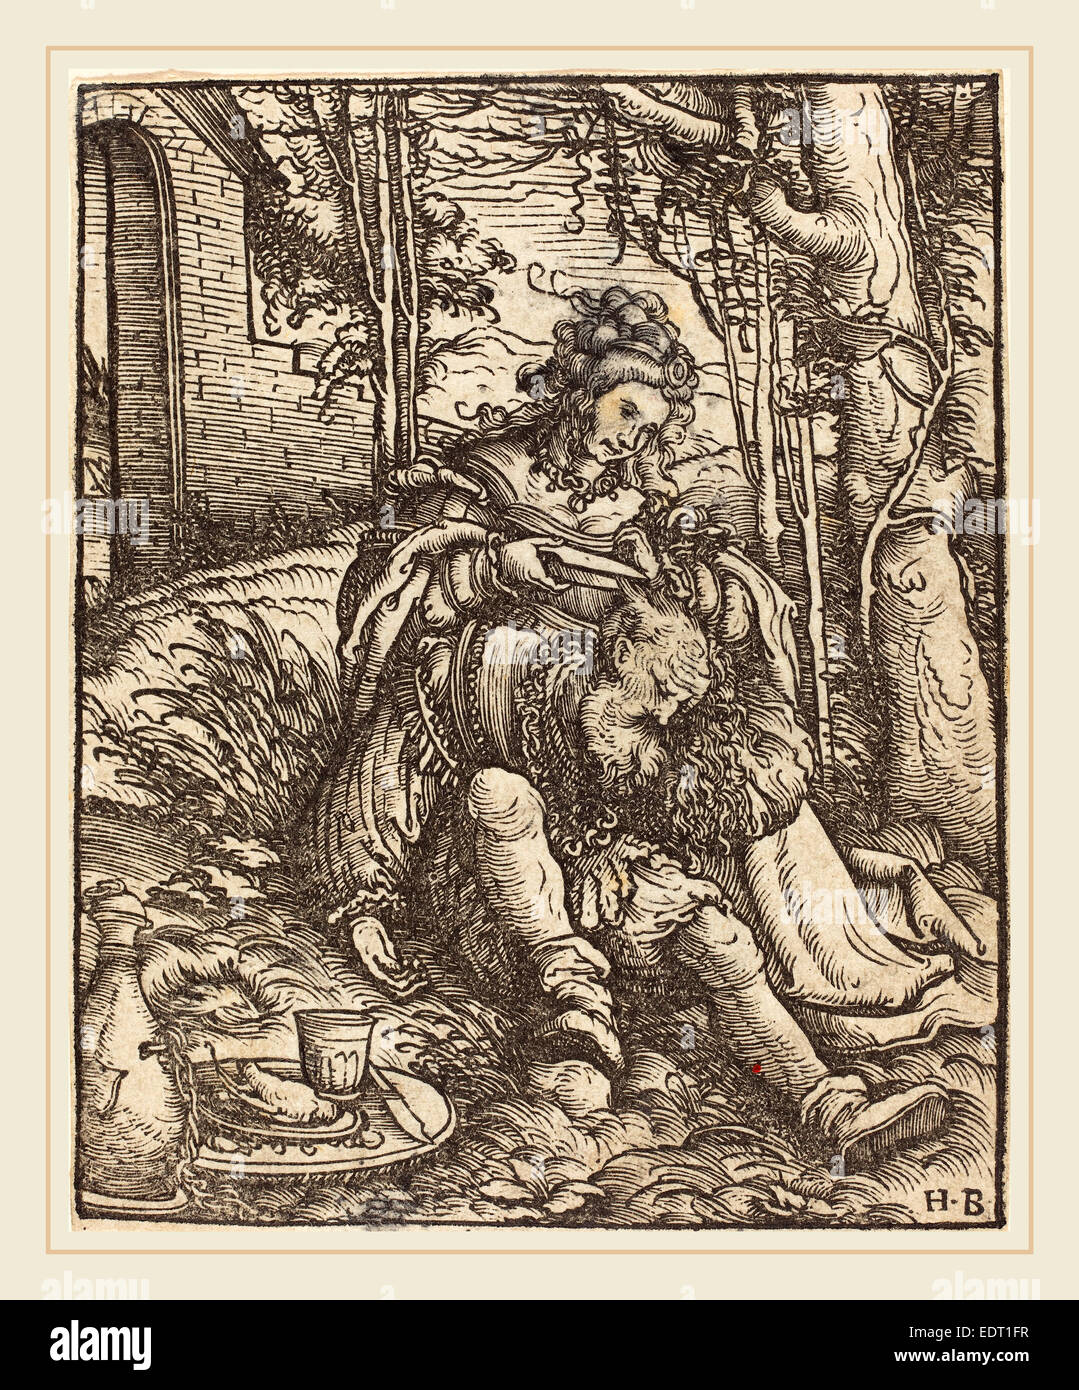 Hans Burgkmair I (German, 1473-1531), Samson and Delilah, woodcut